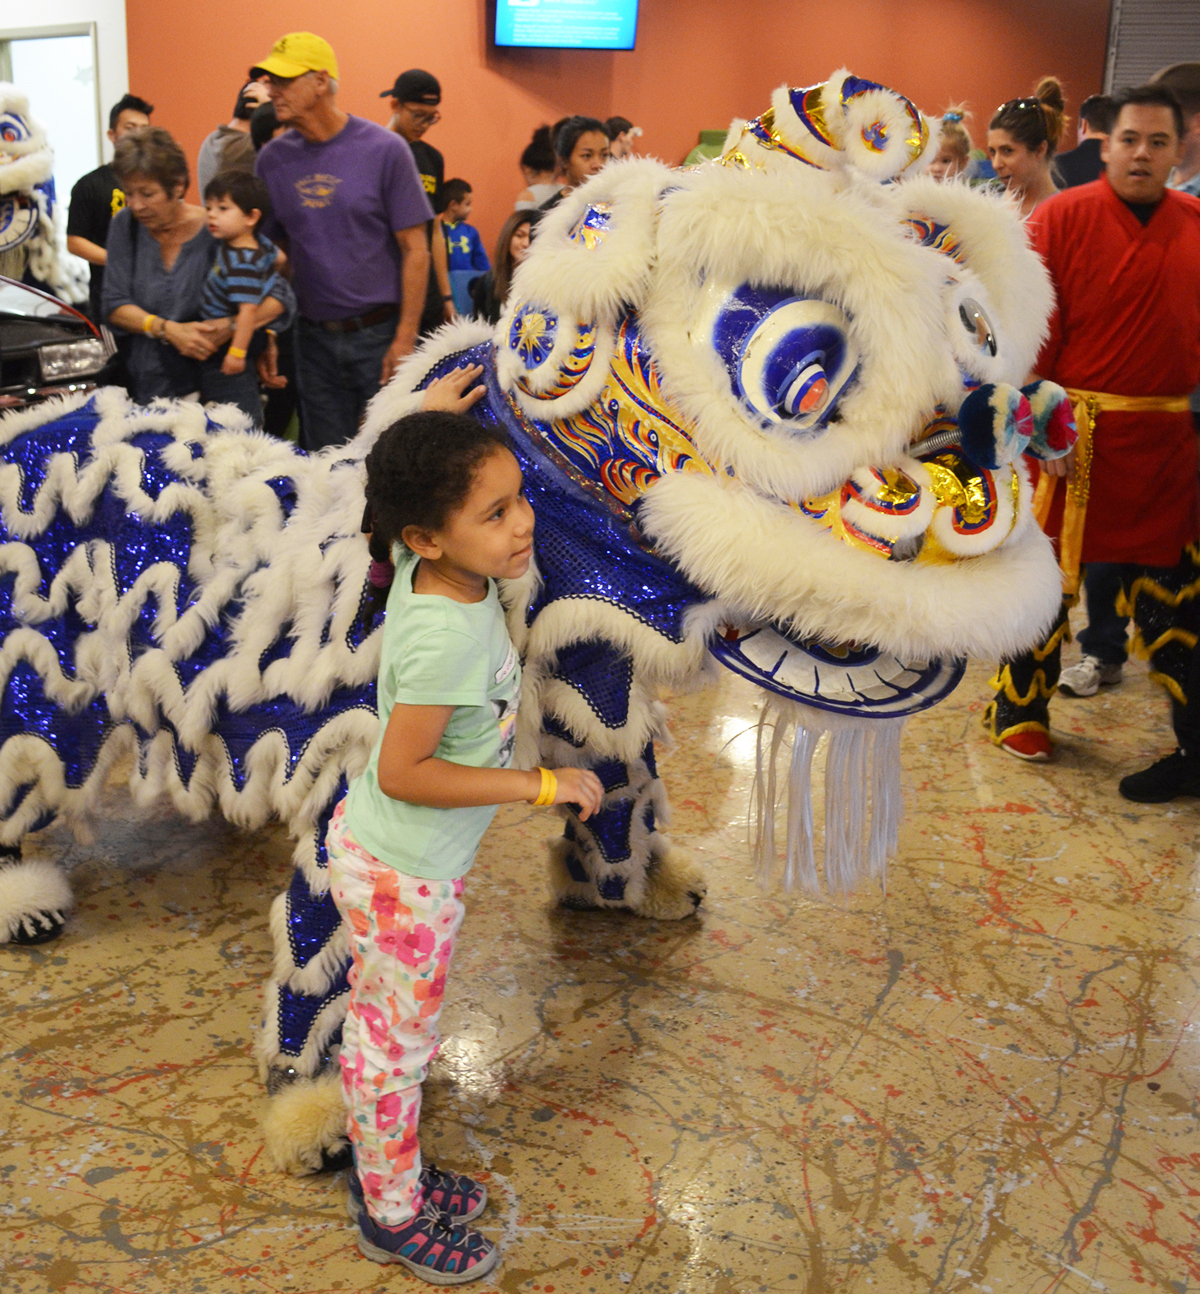 Families Explore Rich Chinese New Year Traditions — The Woodlands Children's Museum hosts special celebration Saturday, Feb. 10